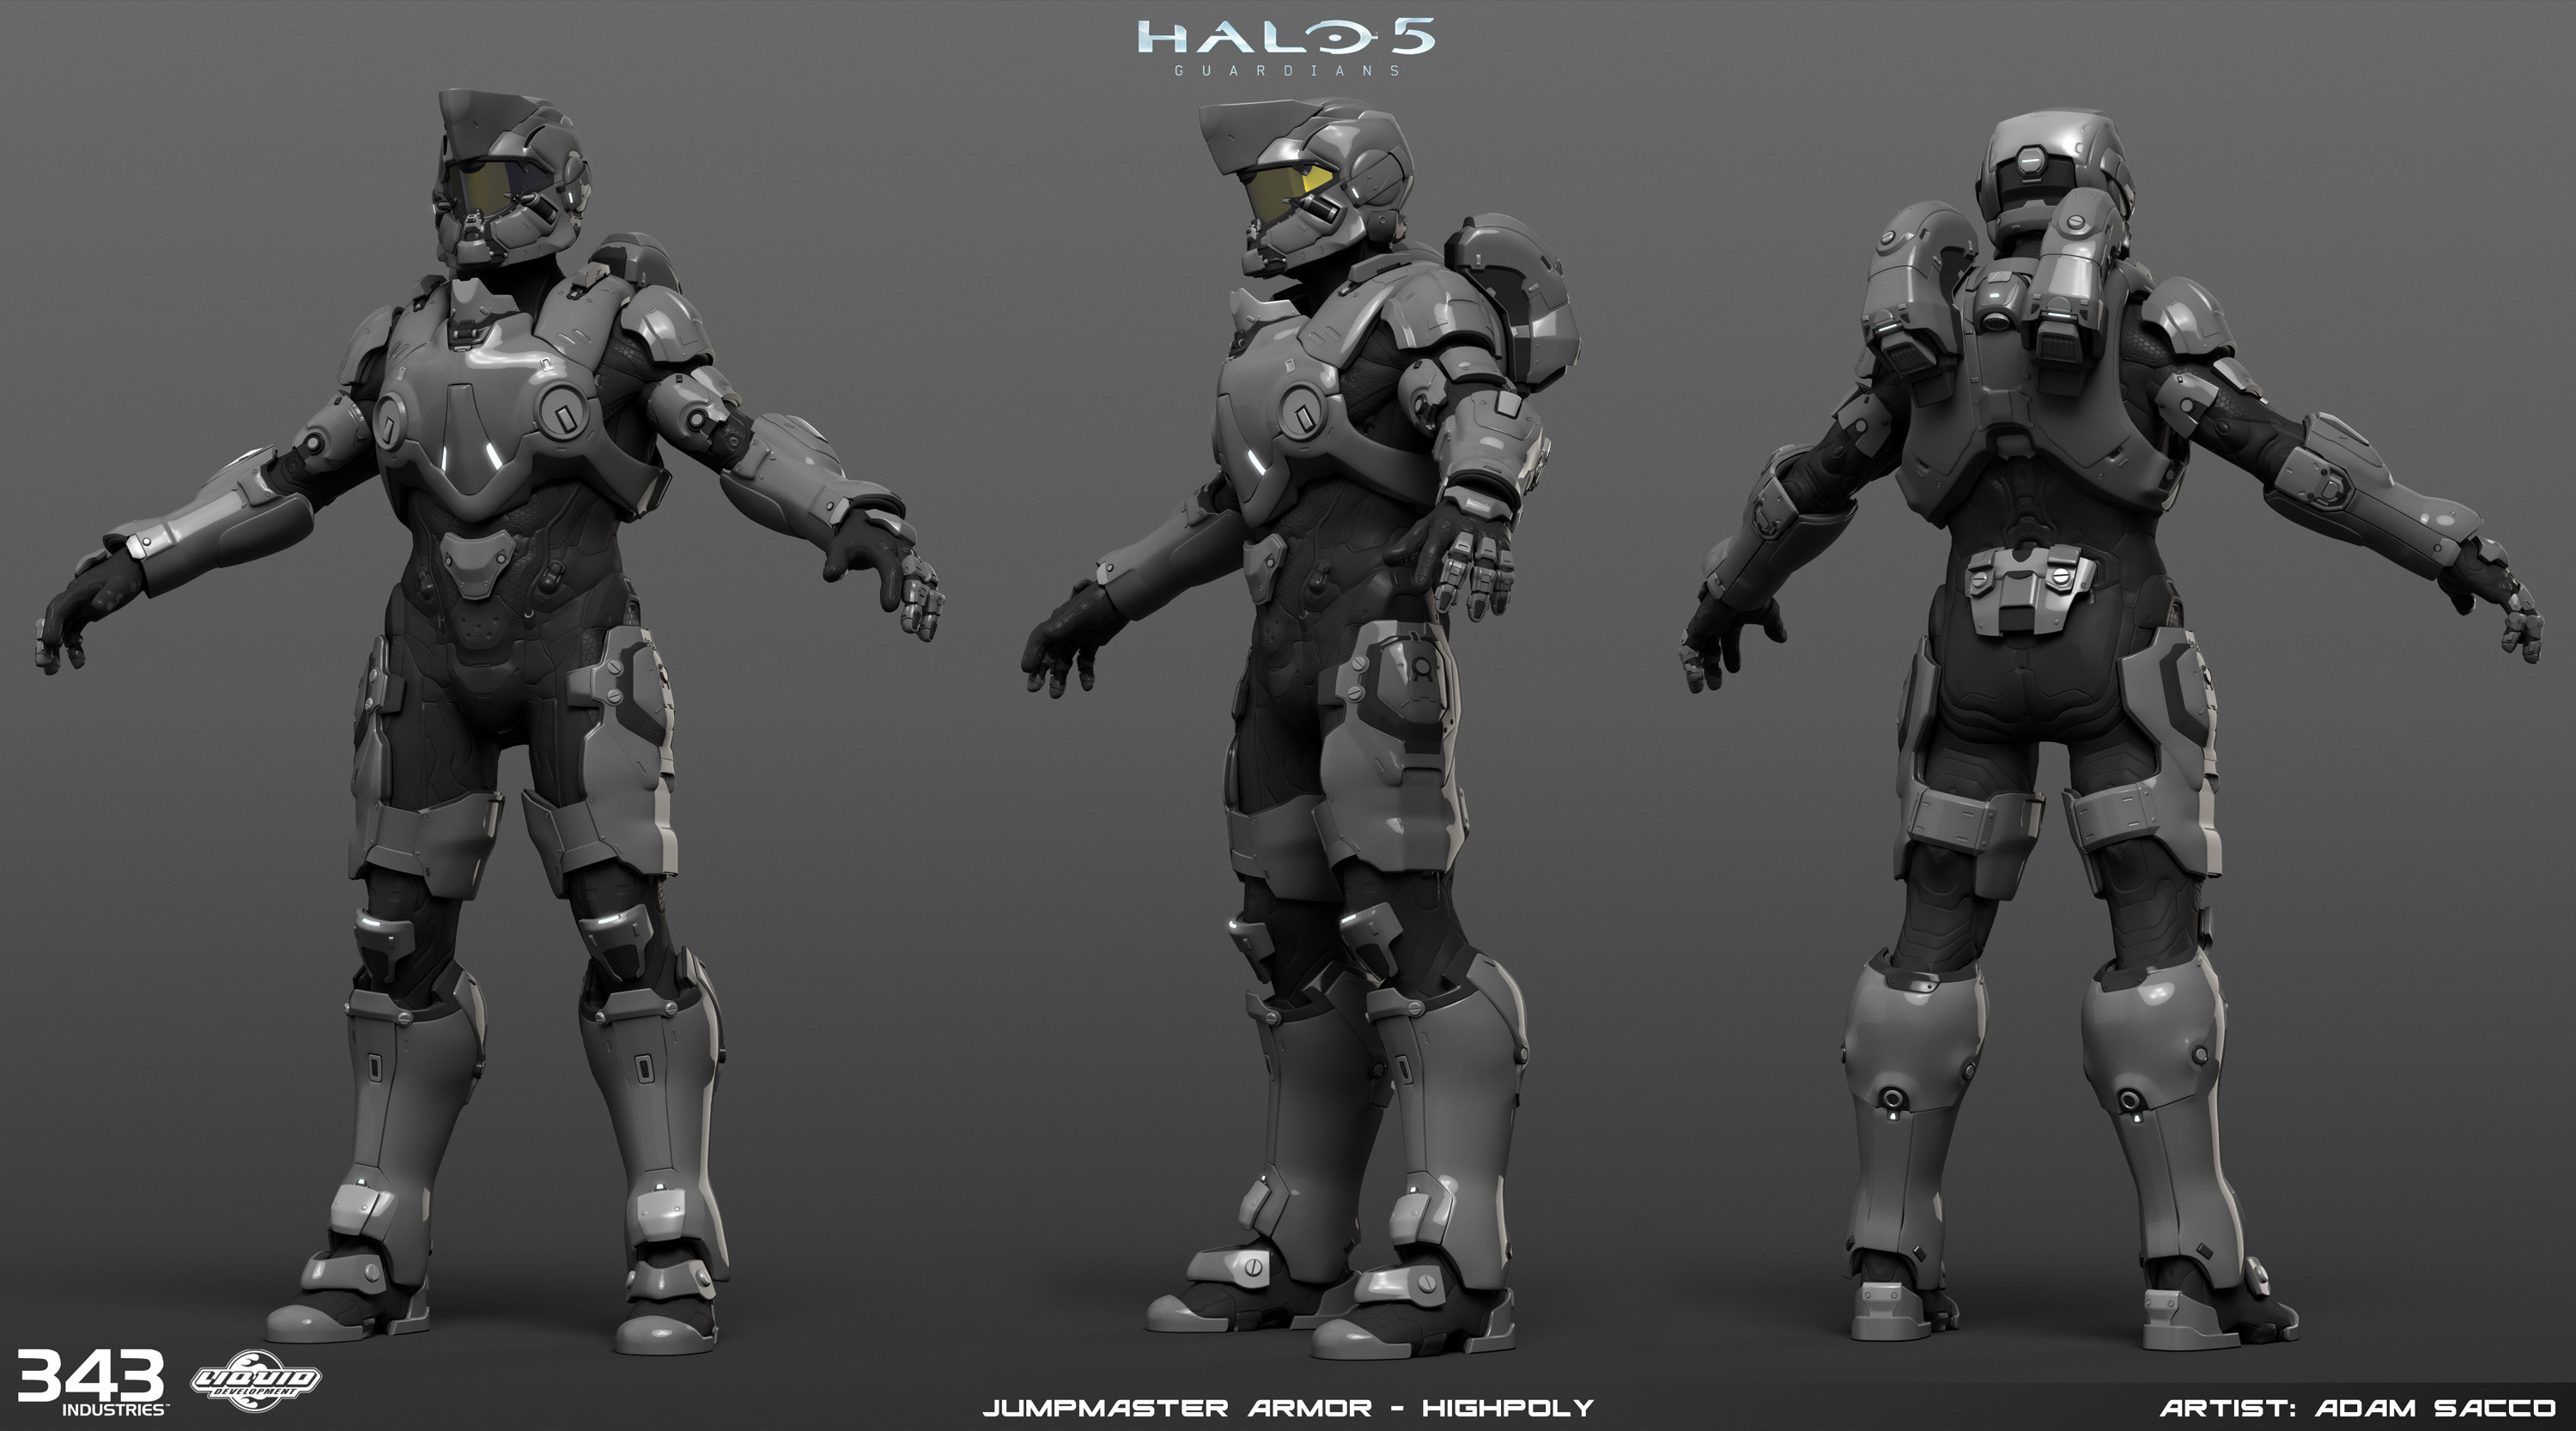 Halo 5 - Jumpmaster armor - high poly